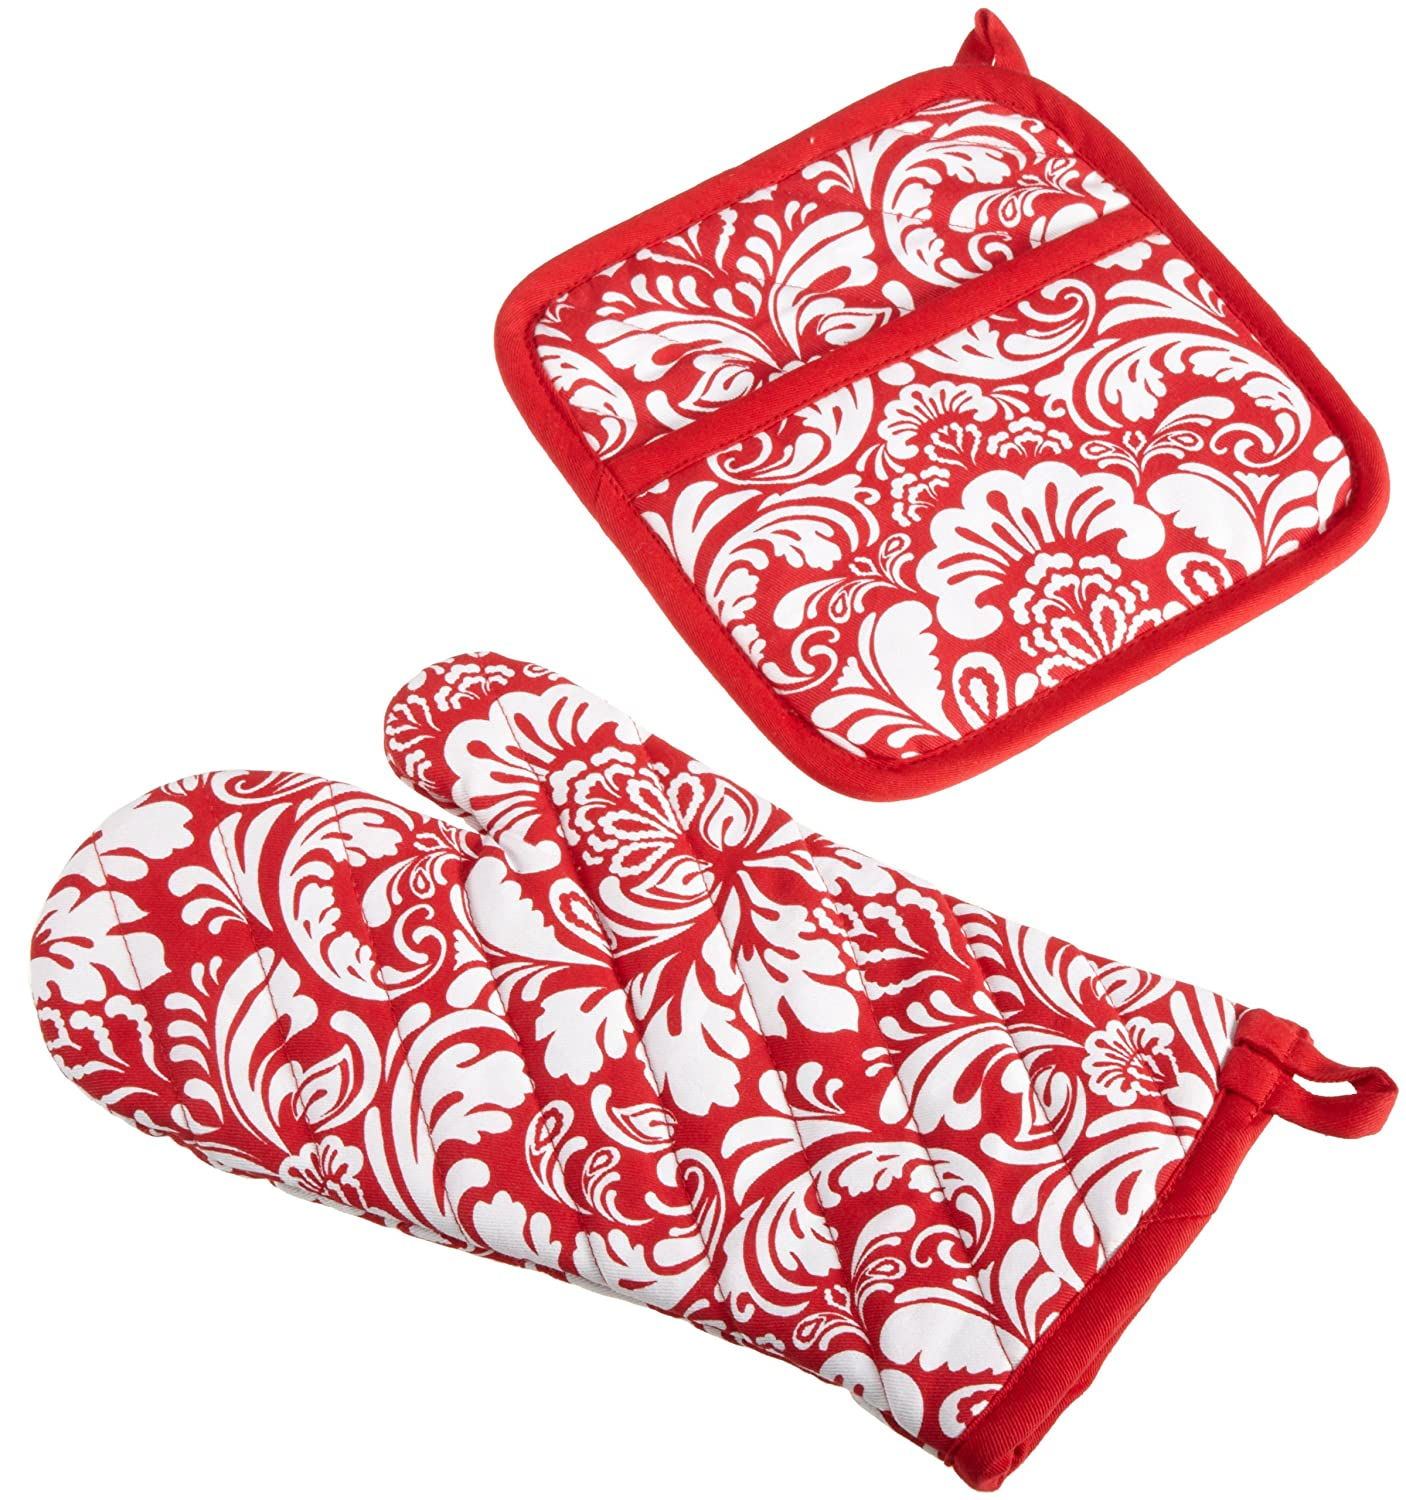 "DII Cotton Damask Oven Mitt 12 x 6.5"" and Pot Holder 8.5 x 8"" Kitchen Gift Set, Machine Washable and Heat Resistant for Cooking and Baking-Red"